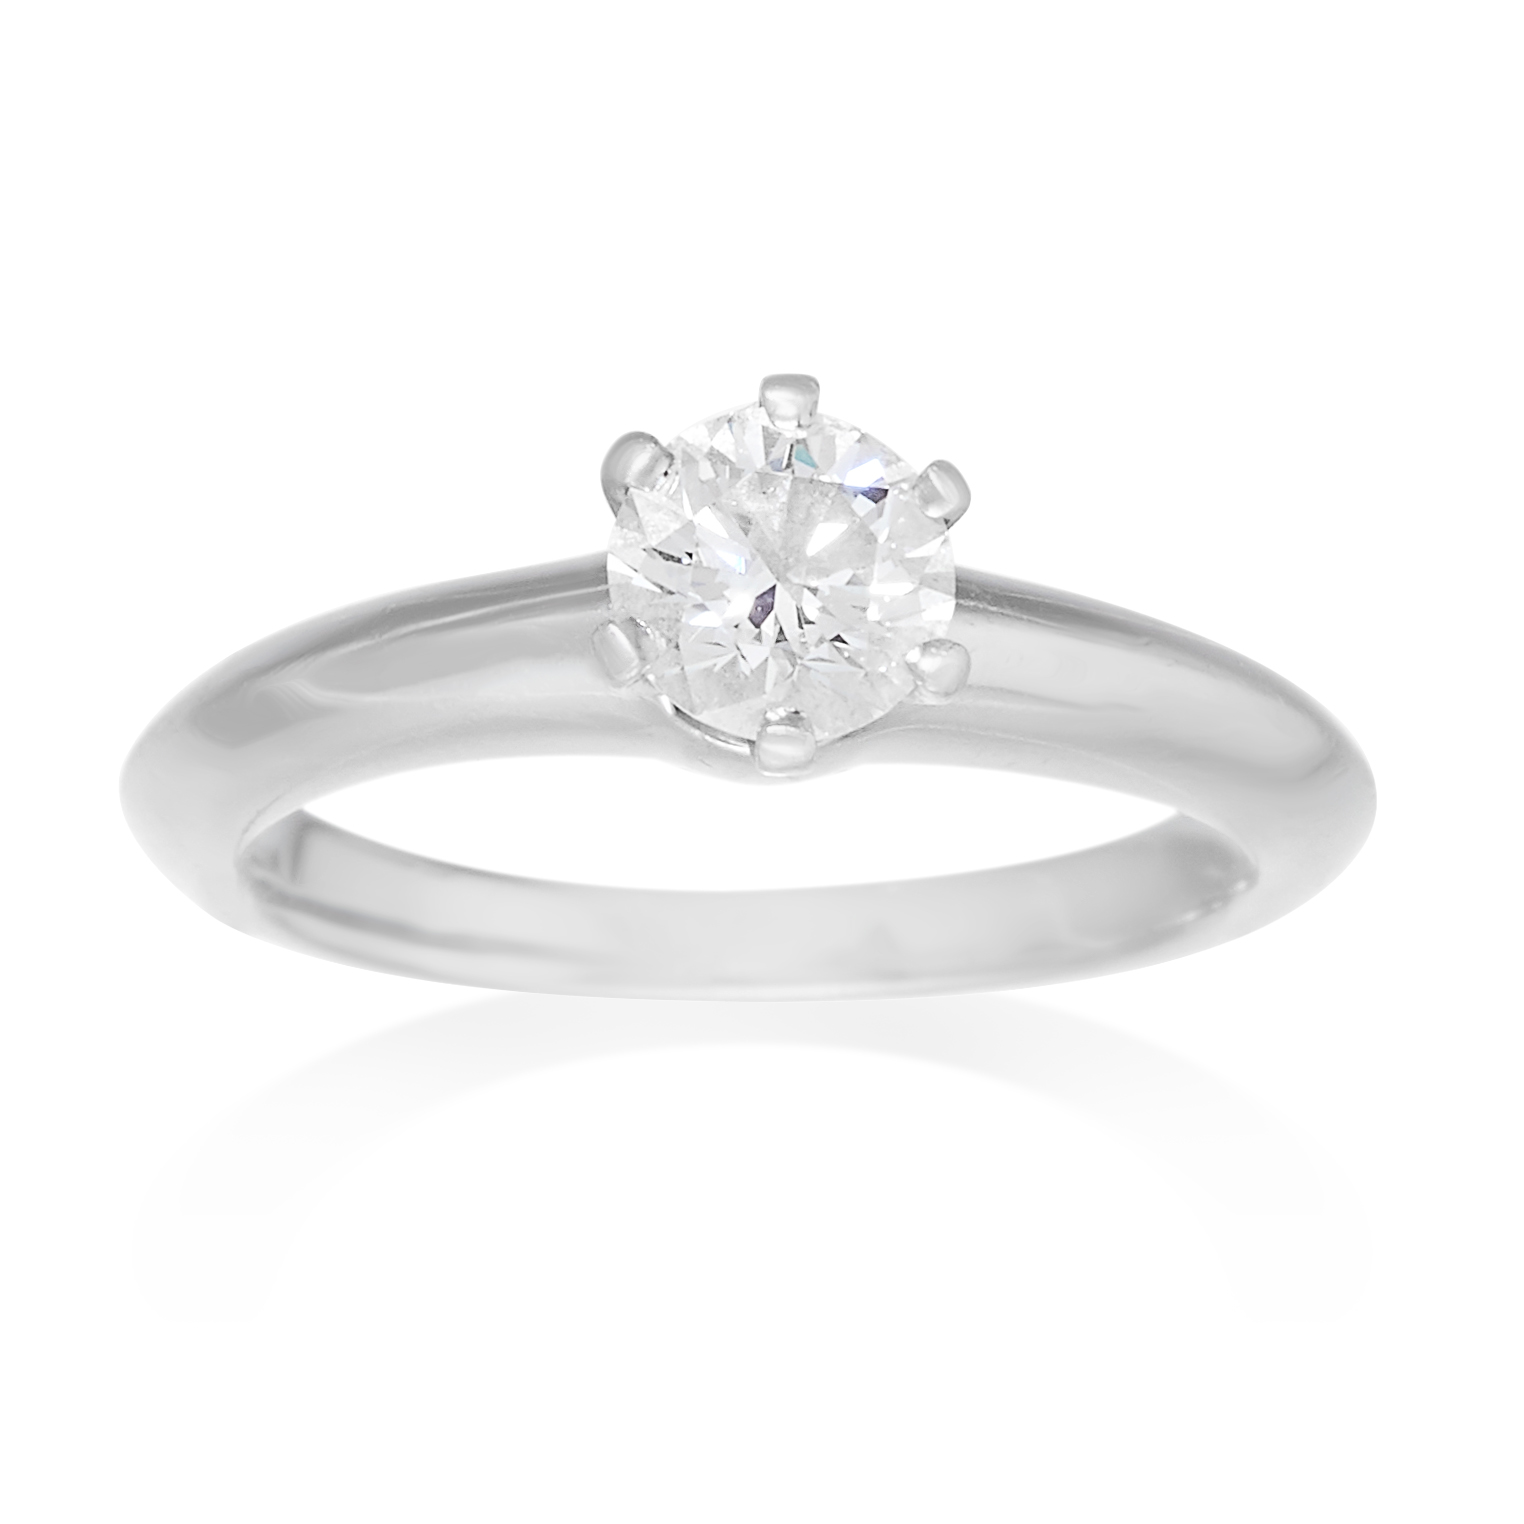 Los 6 - A 0.52 CARAT SOLITAIRE DIAMOND RING, TIFFANY & CO in platinum, set with a brilliant cut diamond of